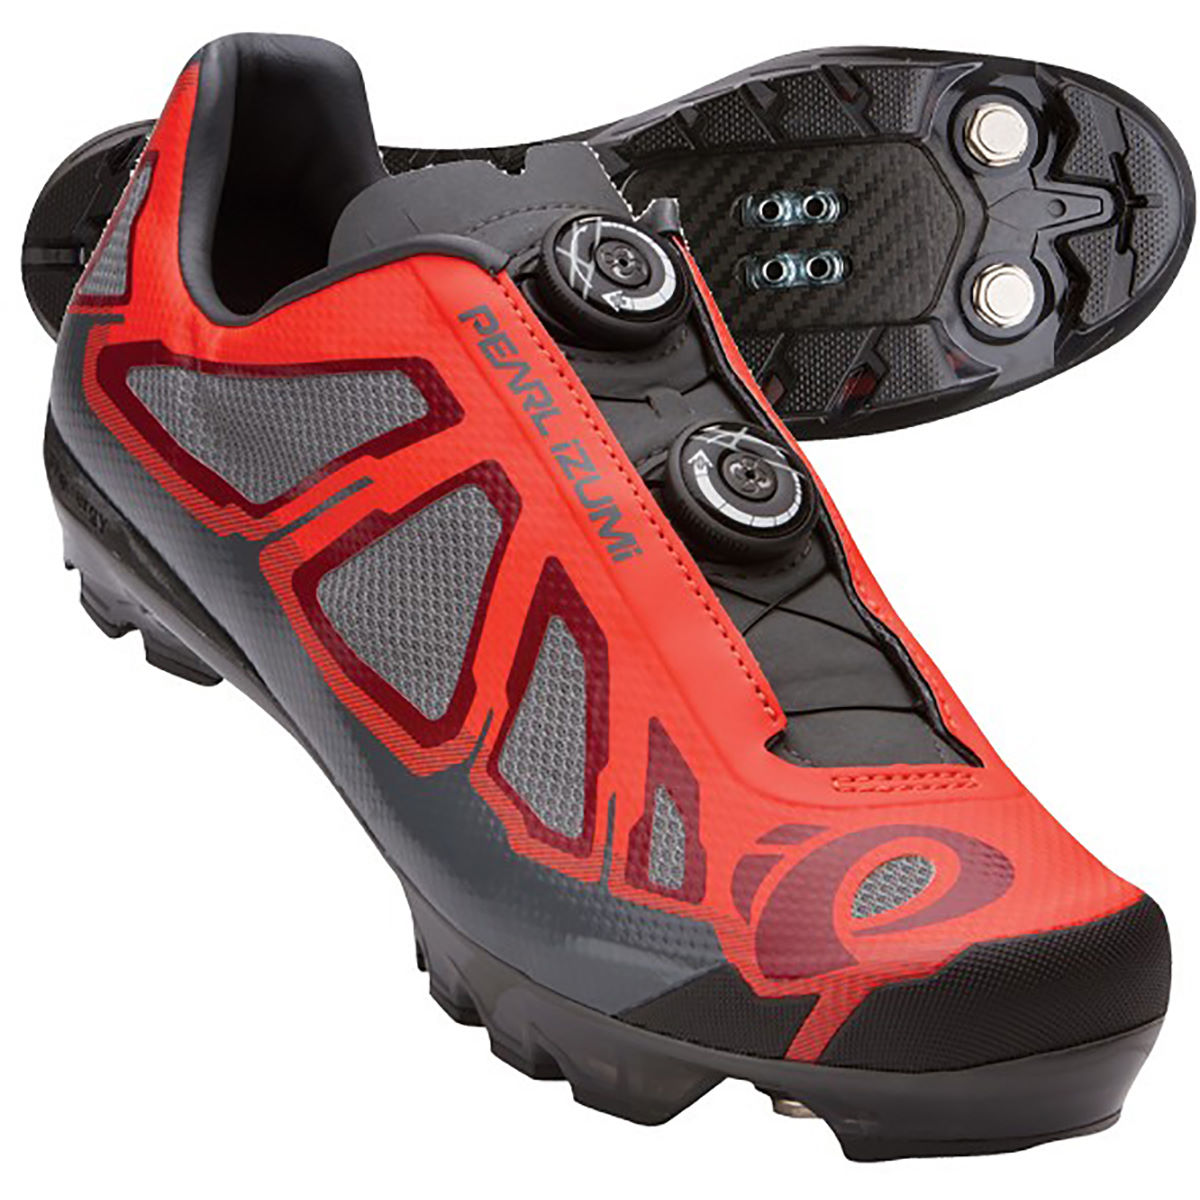 Chaussures VTT Pearl Izumi X-Project 1.0 - 44 Mandarin Red/Black